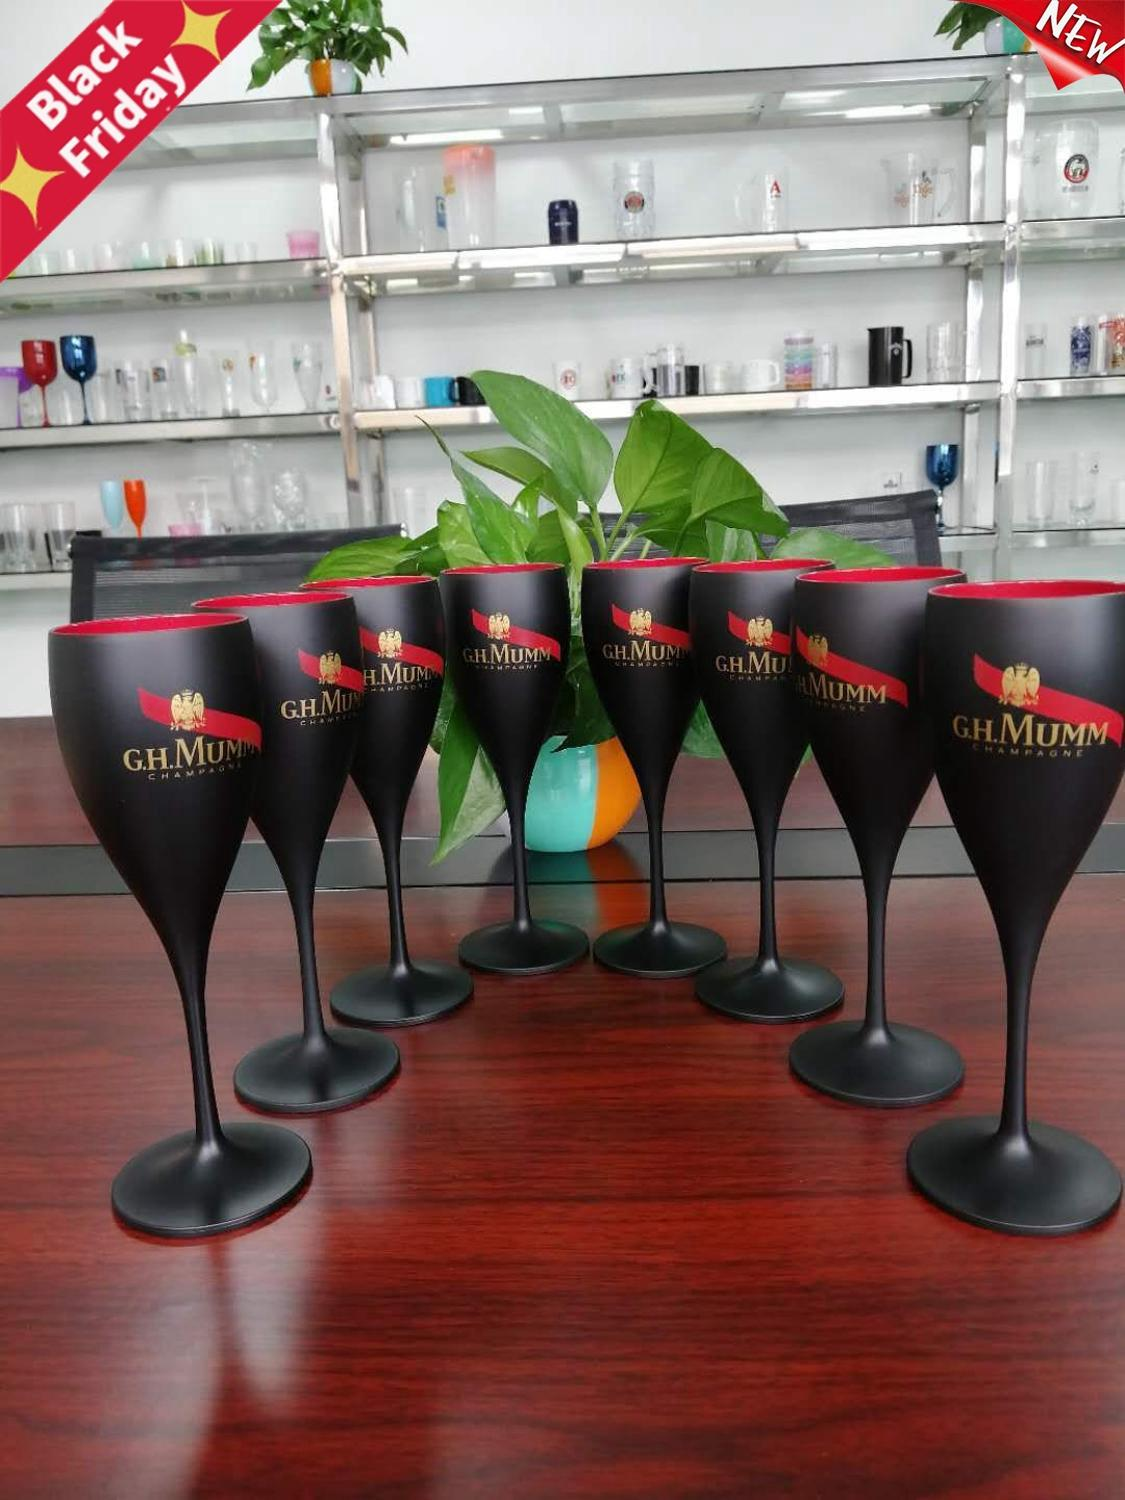 Factory plastic wine glasses PS acrylic PC plastic champagne glasses party glasses can be customized LOGO